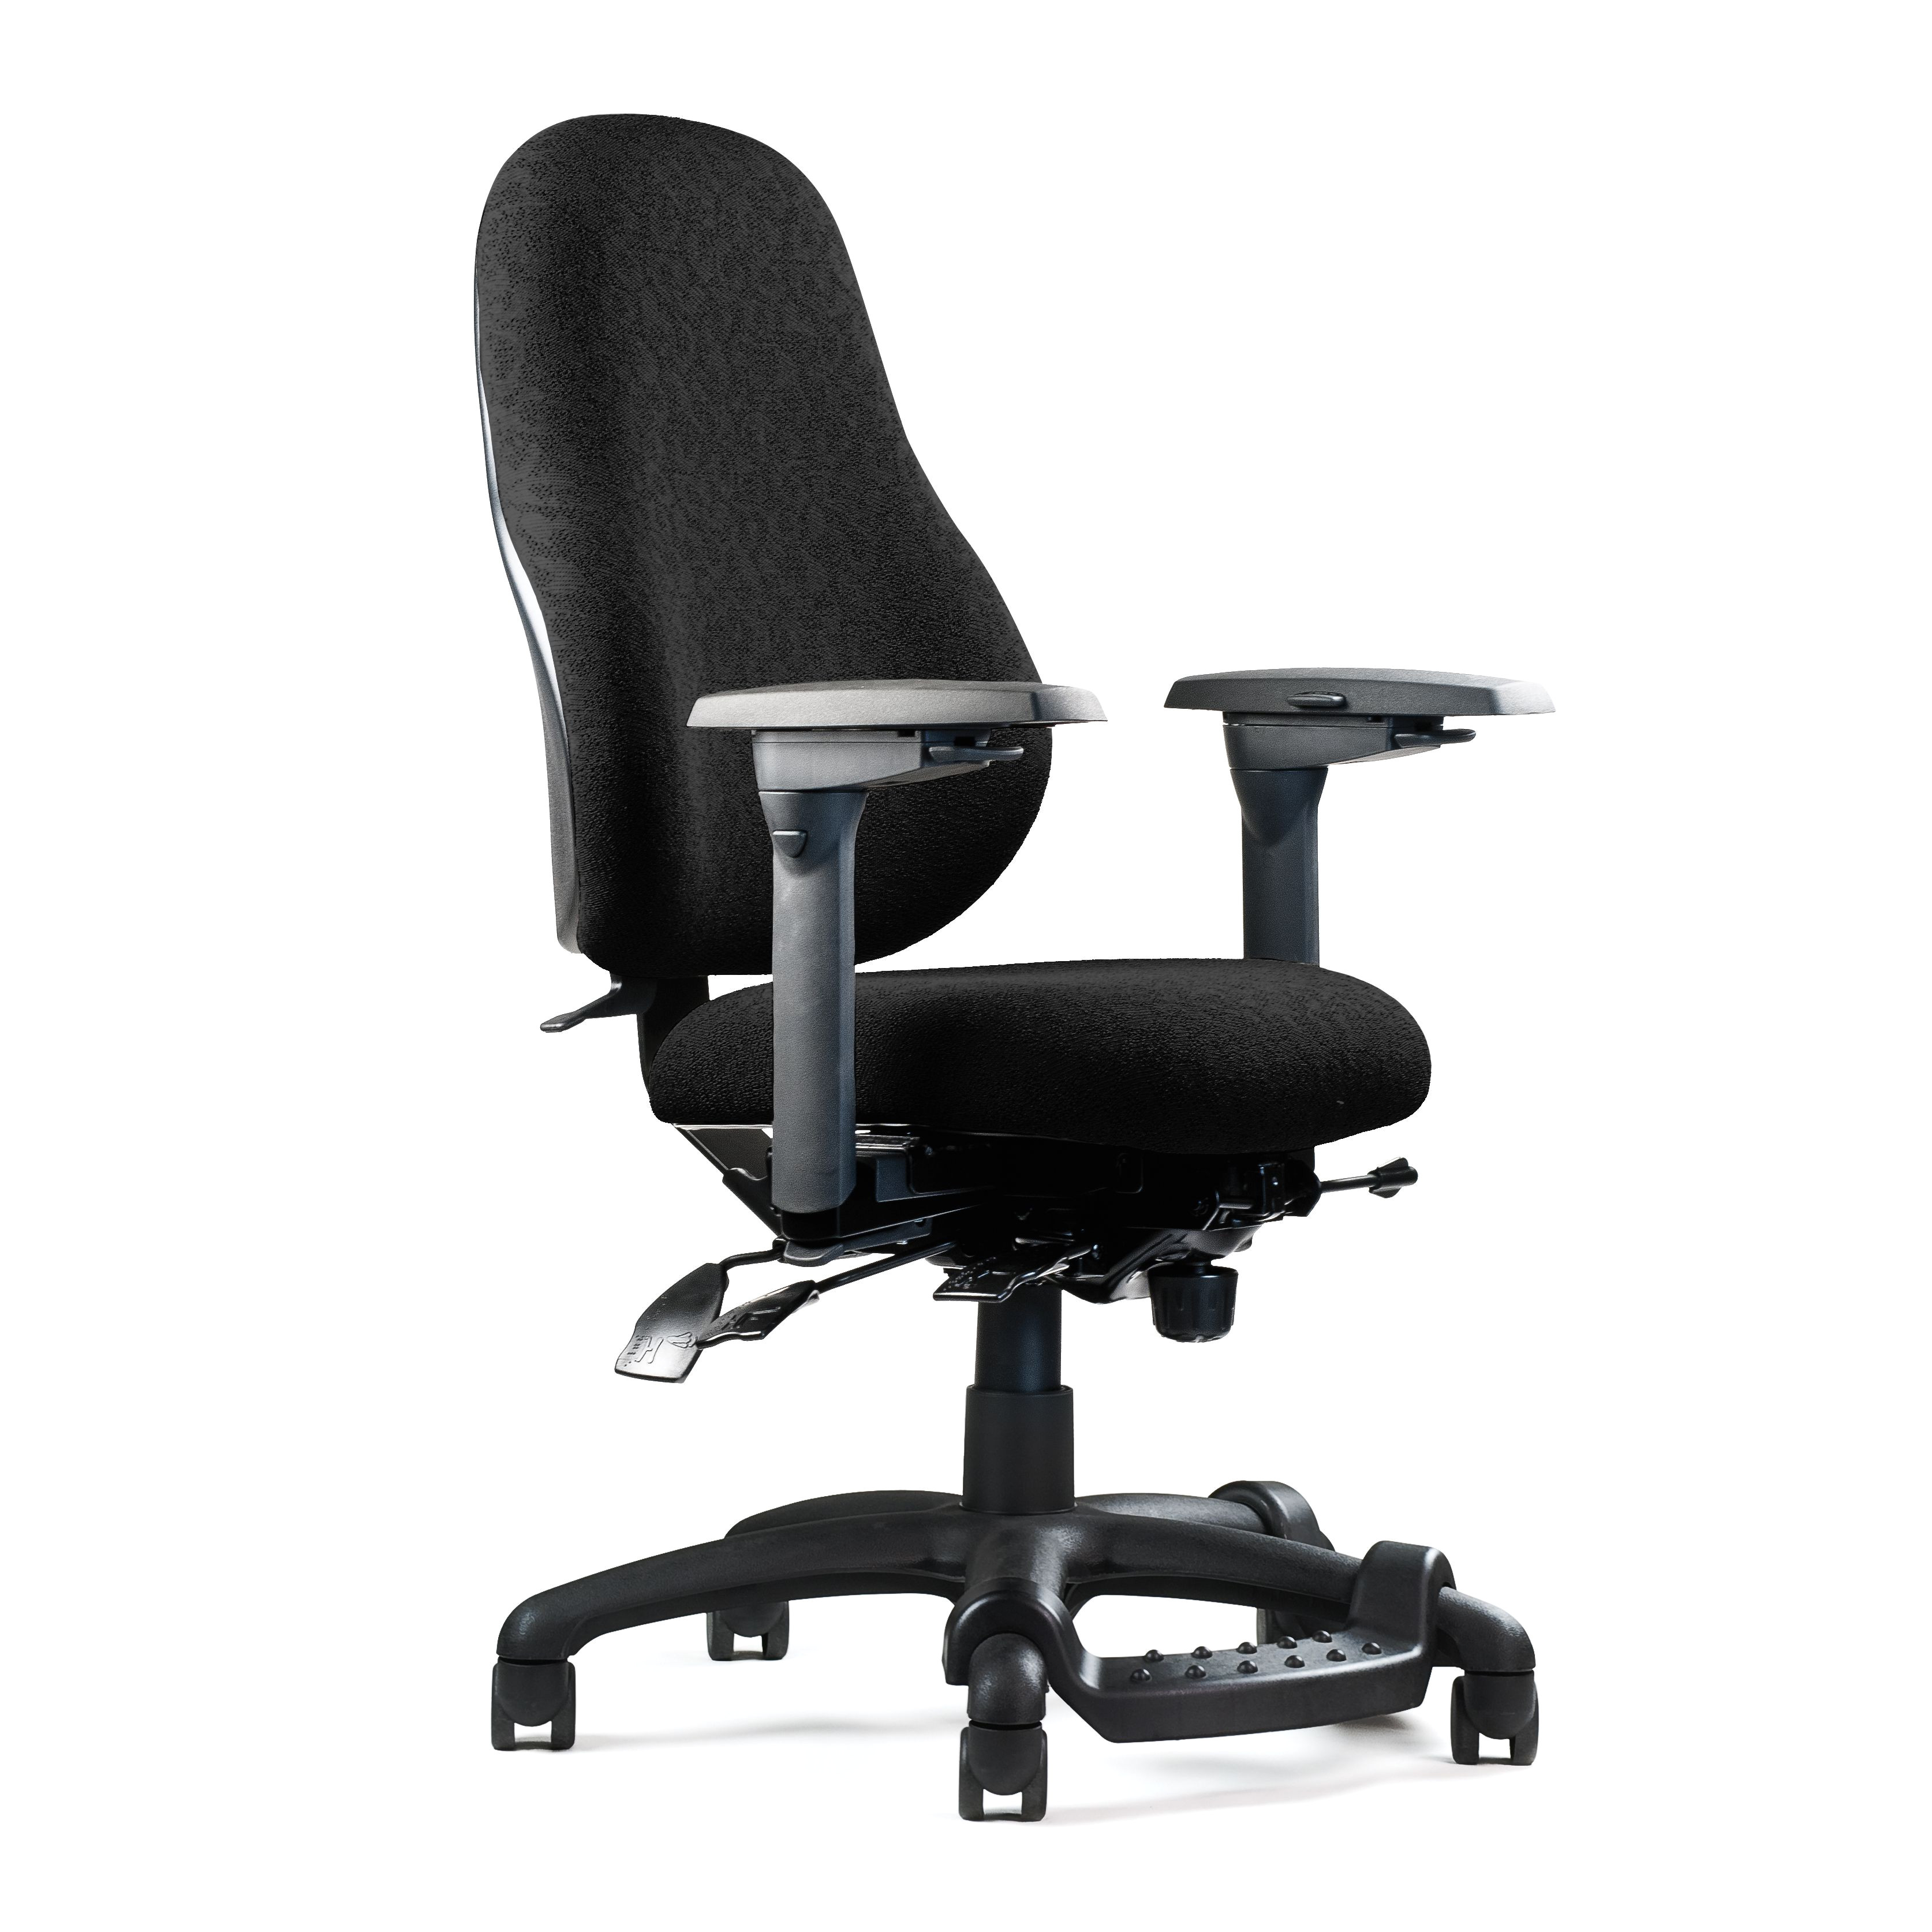 pin by good furniture on office chair pinterest footrest